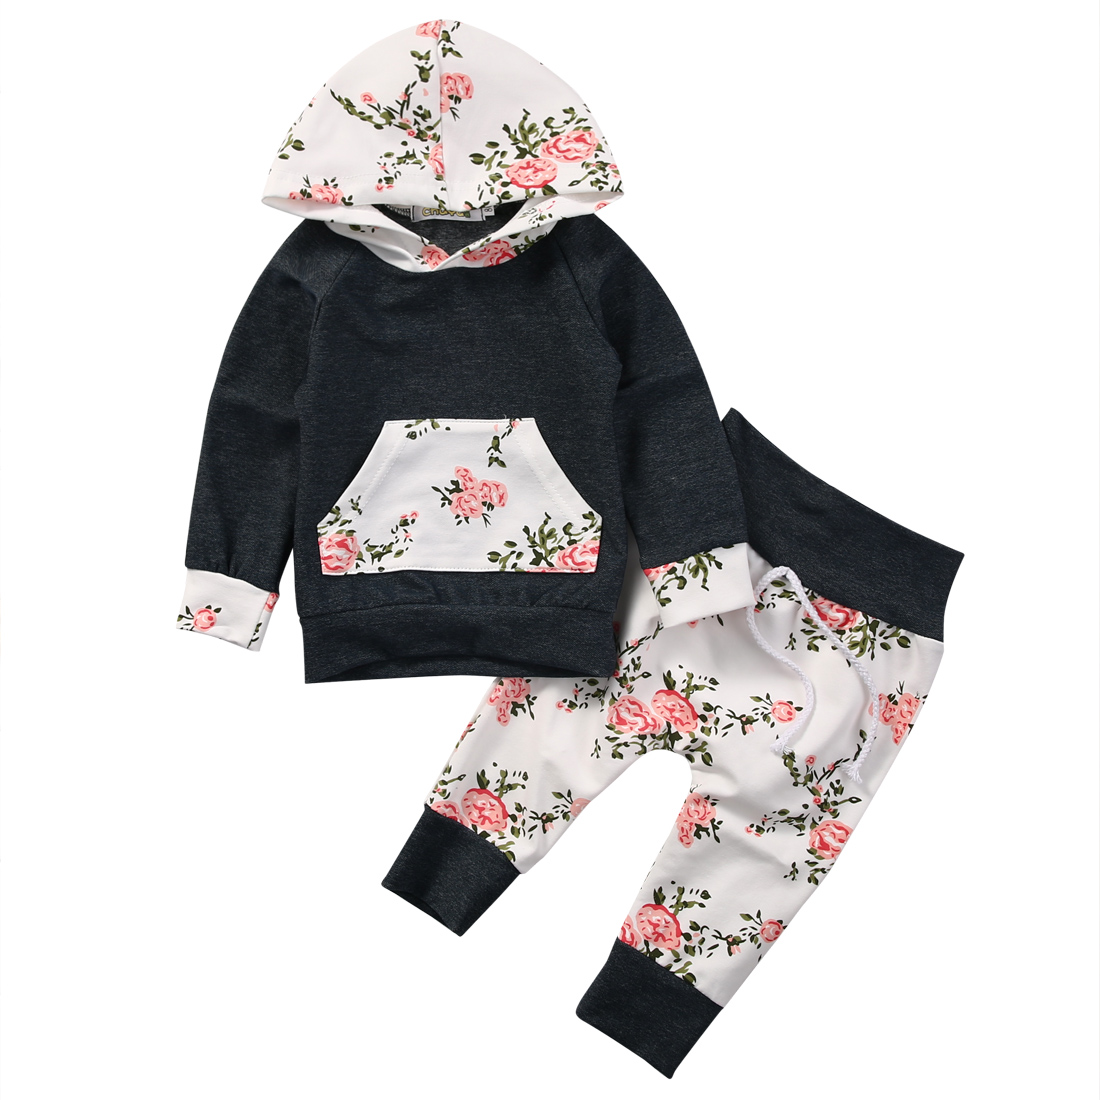 New Style Fashion Newborn Baby Boy Girl Clothes Hooded Tops Long Pants Leggings 2pcs Baby Clothing Outfits Set new style 2017 fashion autumn baby clothing set long sleeve baby outfits newborn baby boy girl clothes children sports suit